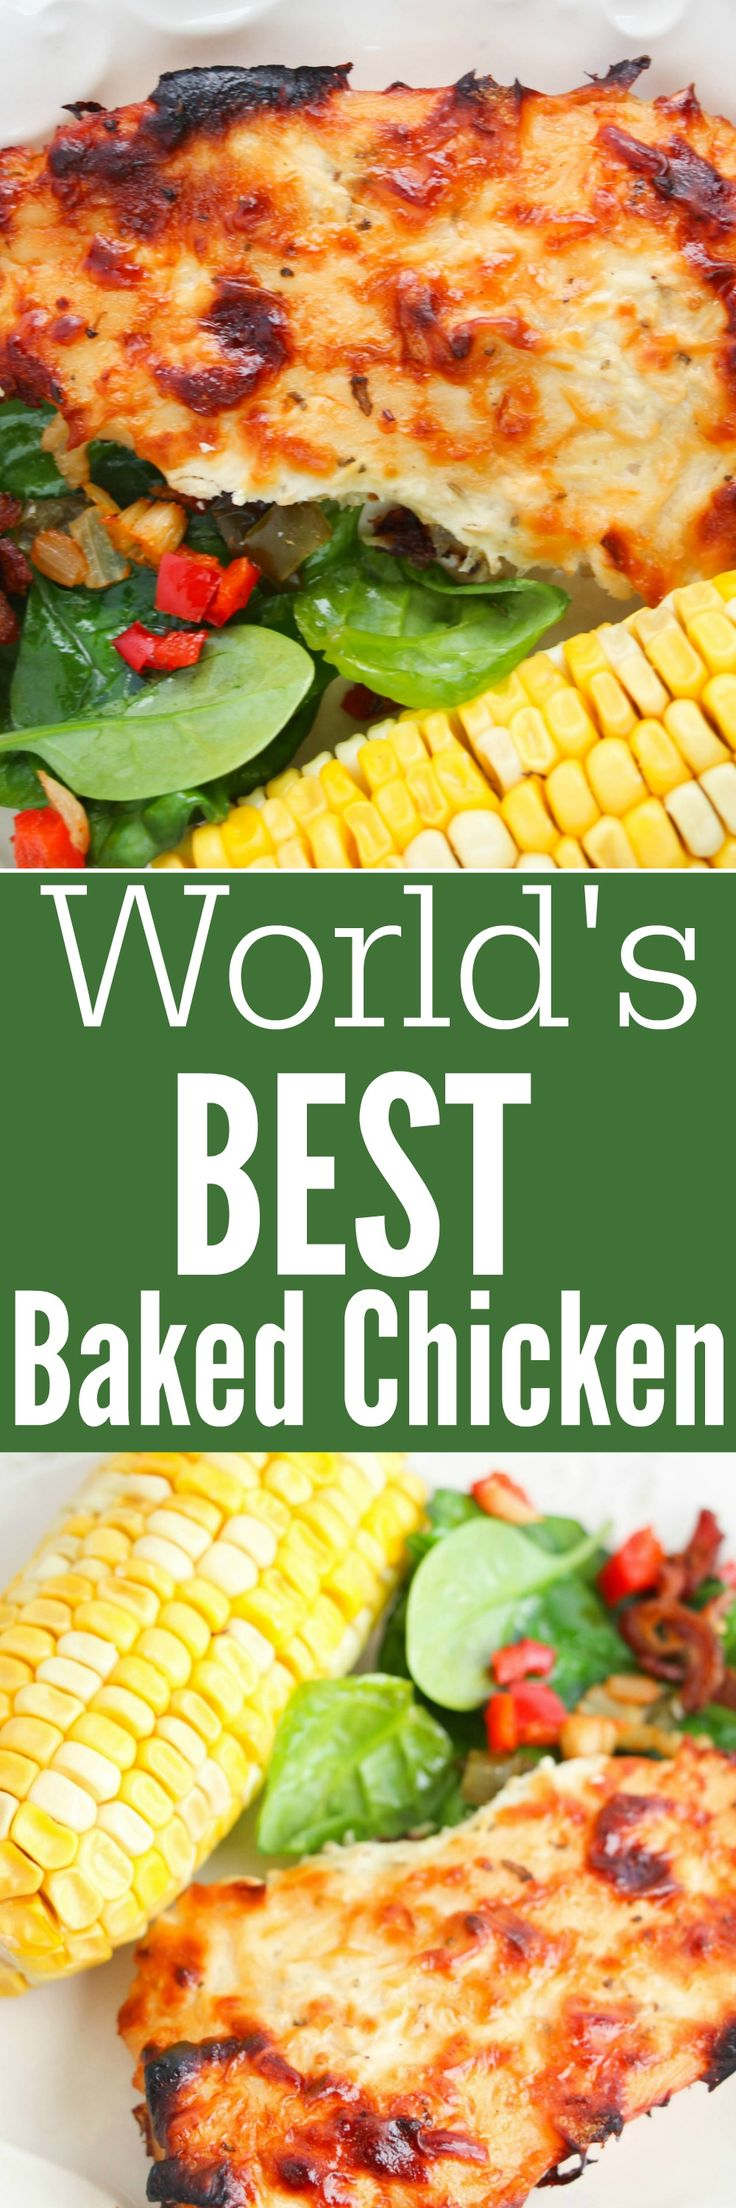 World's Best Baked Chicken Recipe - easy to make and a quick family favourite. Best Chicken Recipes for family friendly meals!